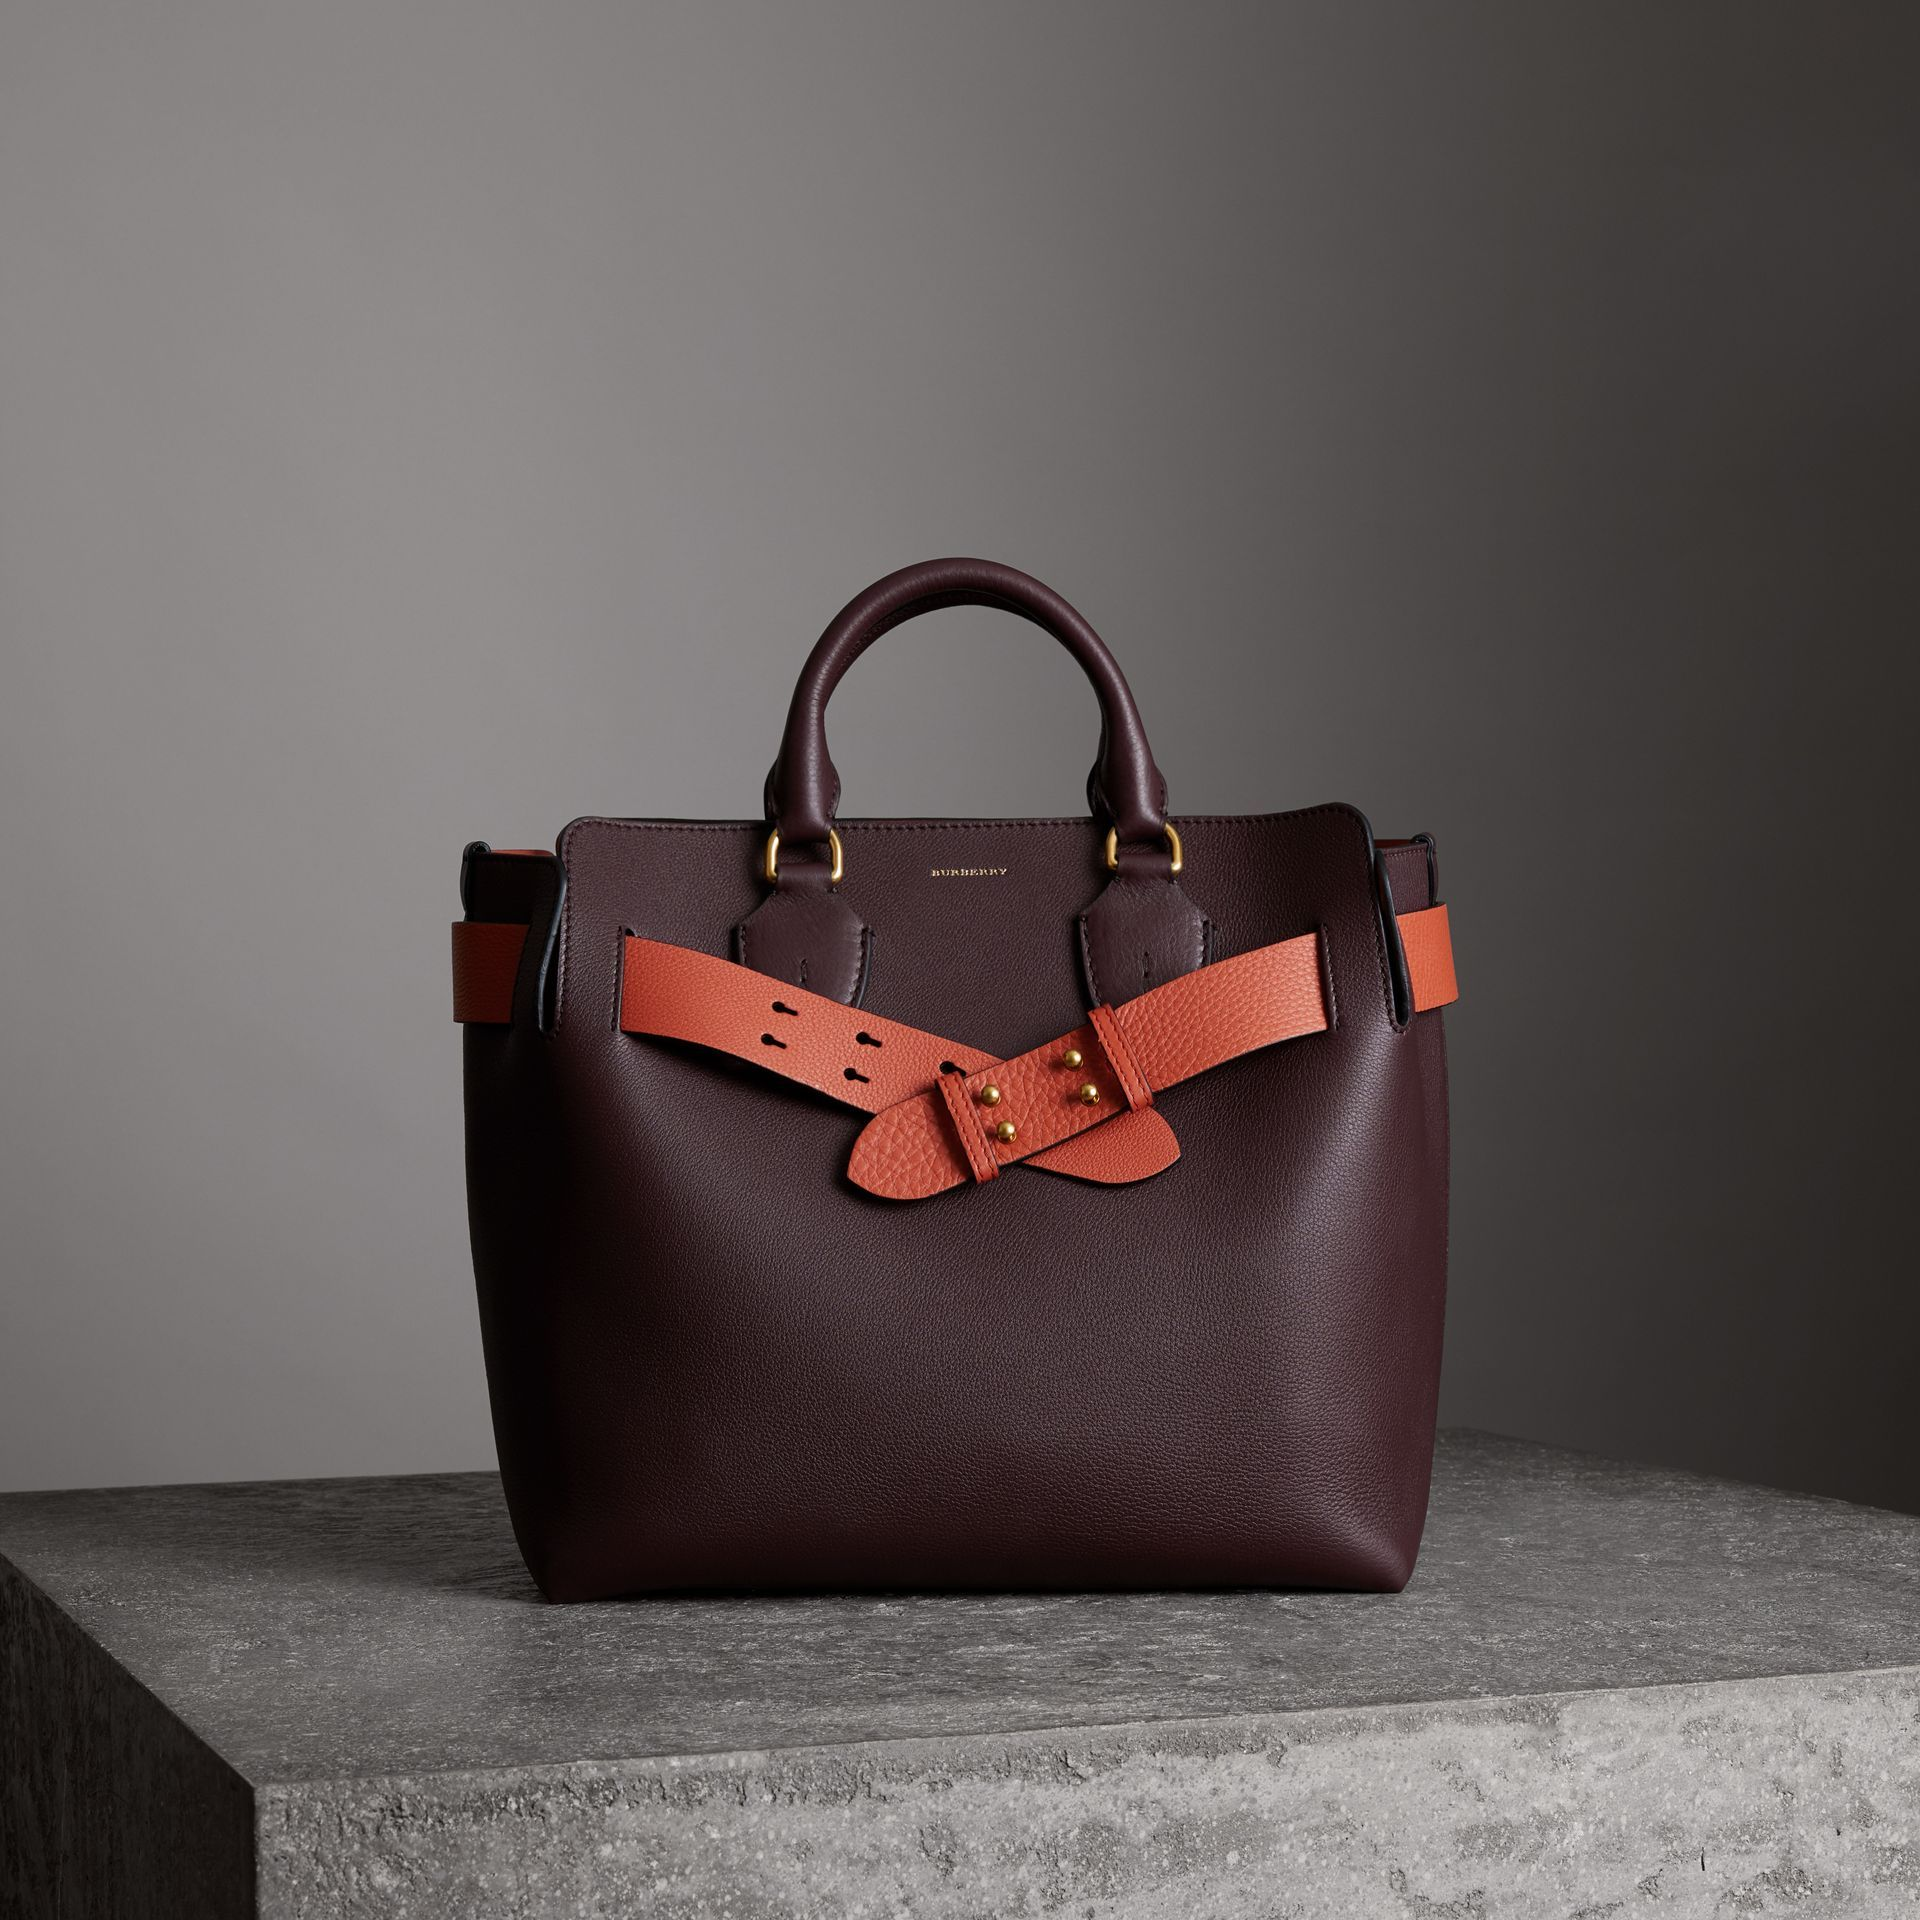 861b638d91 A belted tote by  Burberry influenced by our iconic trench